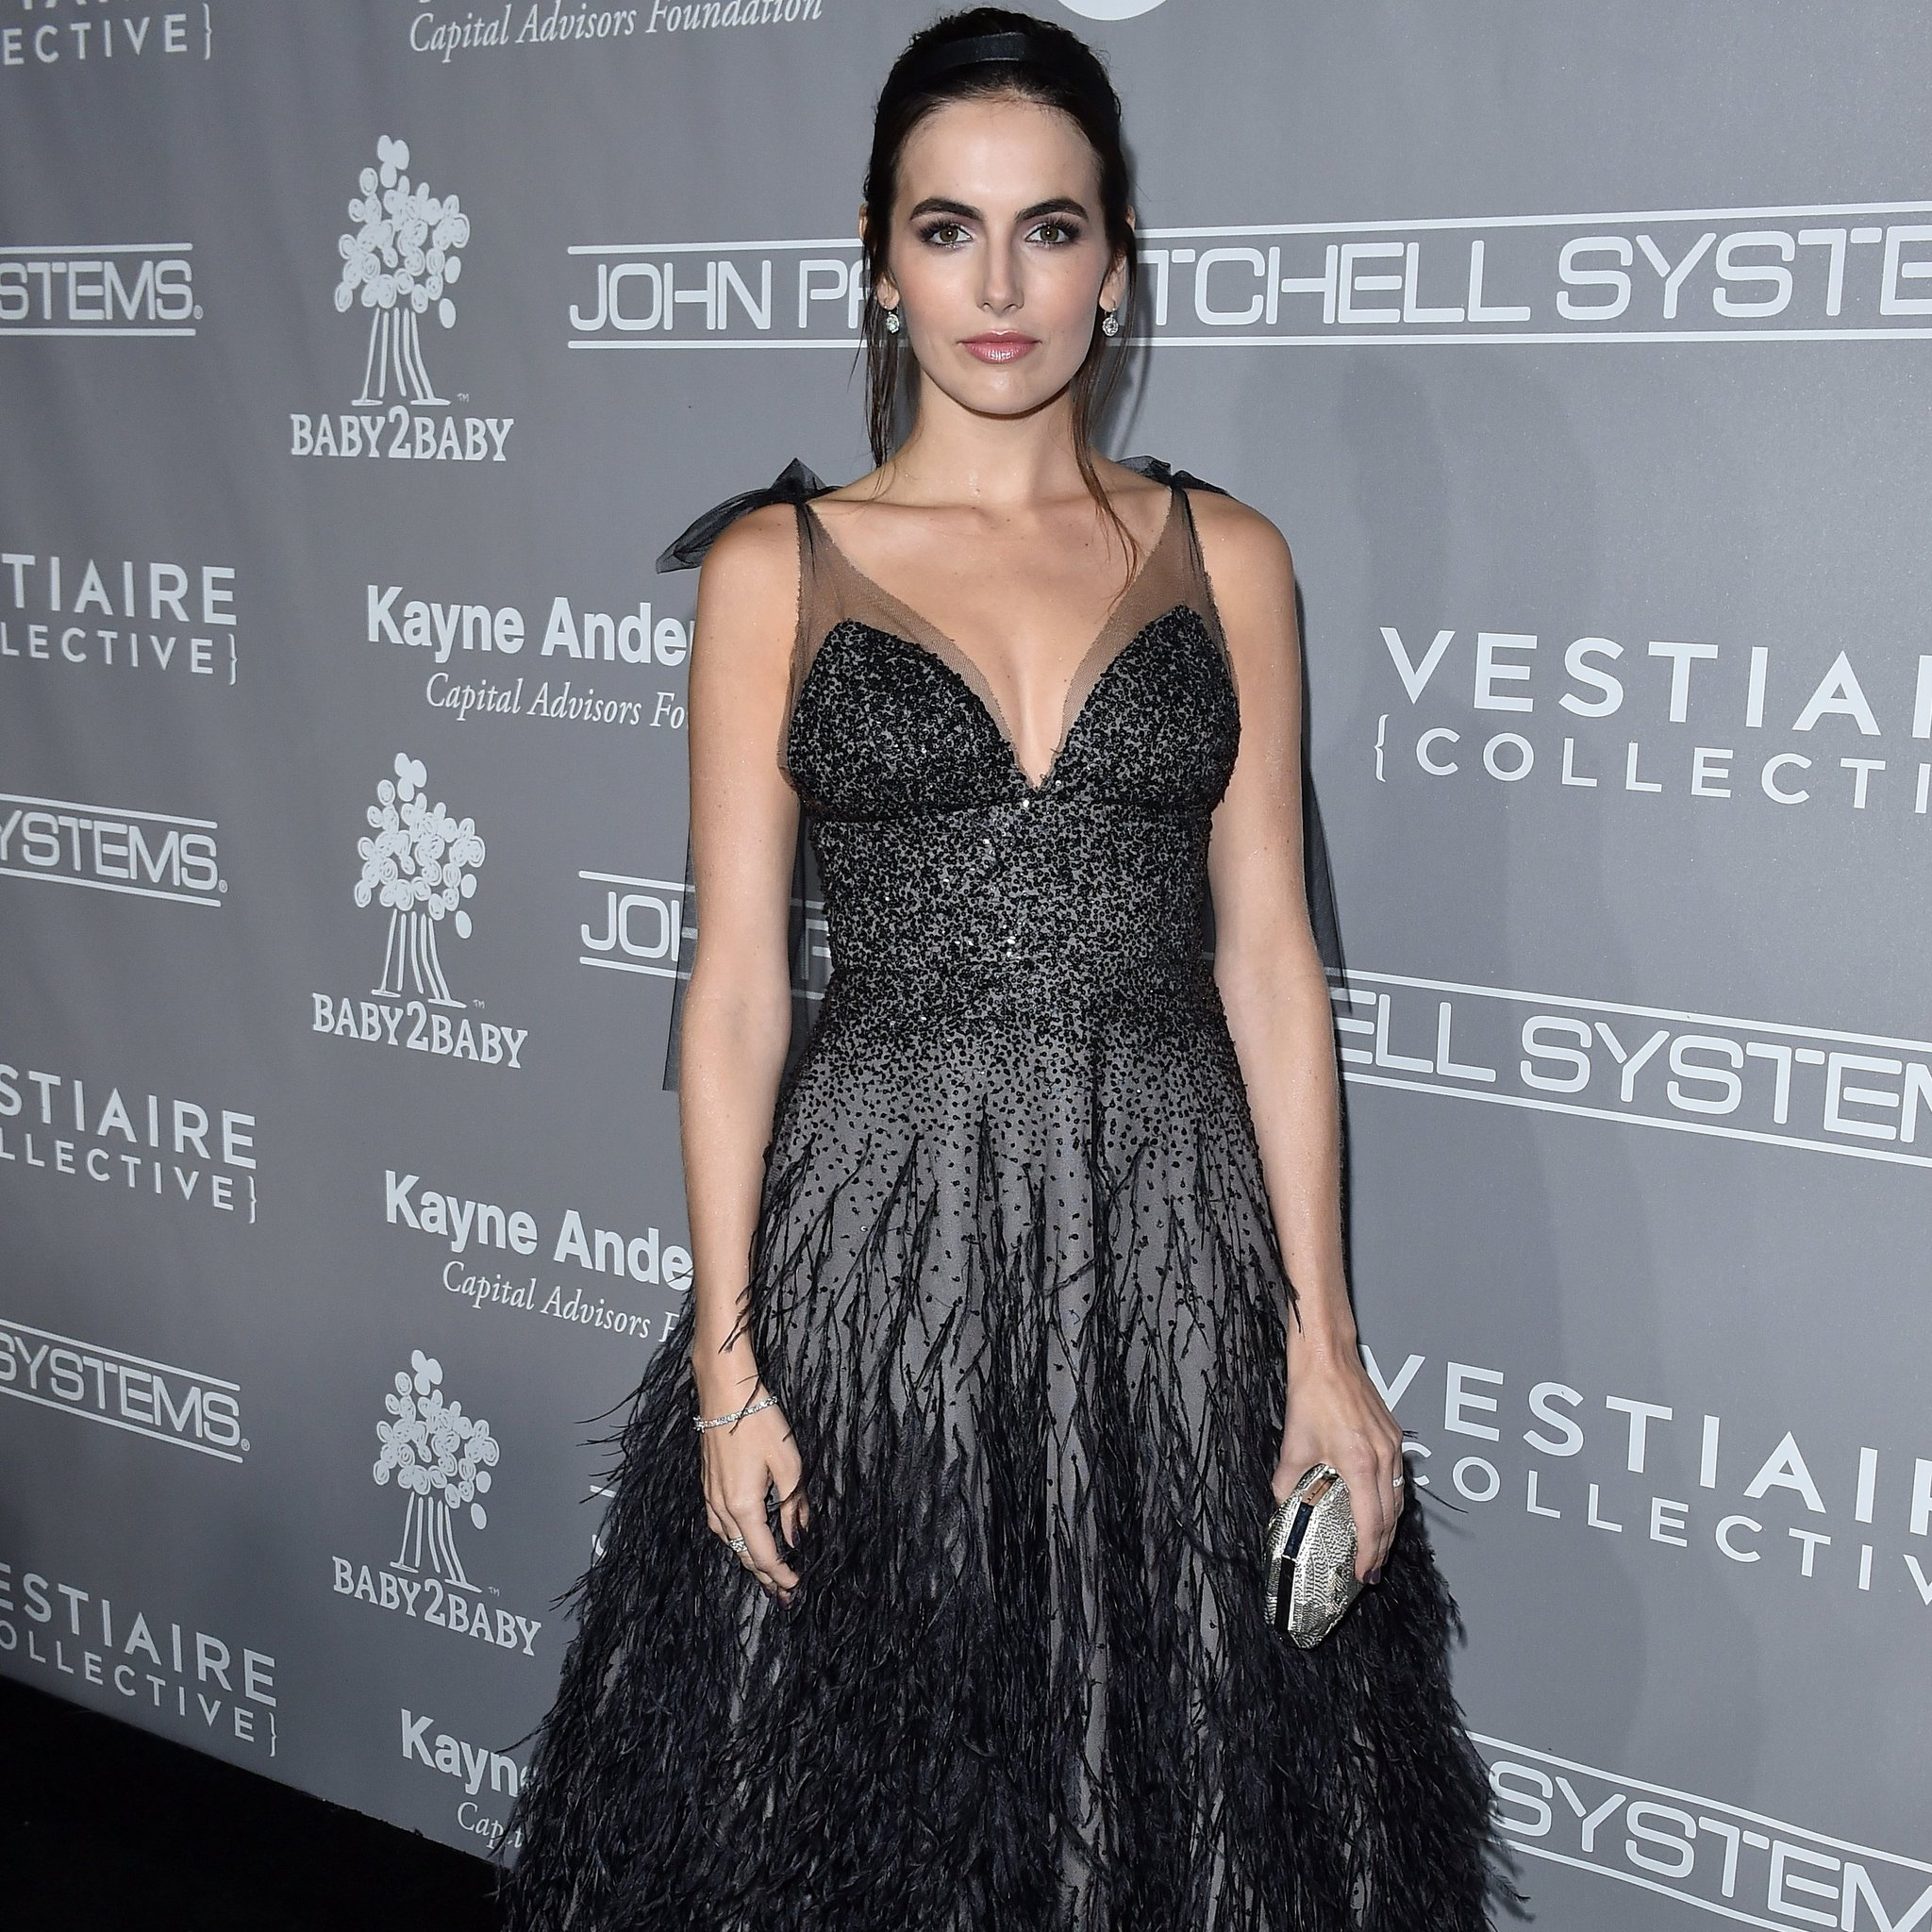 ICloud Camilla Belle nudes (39 foto and video), Ass, Leaked, Twitter, cleavage 2020